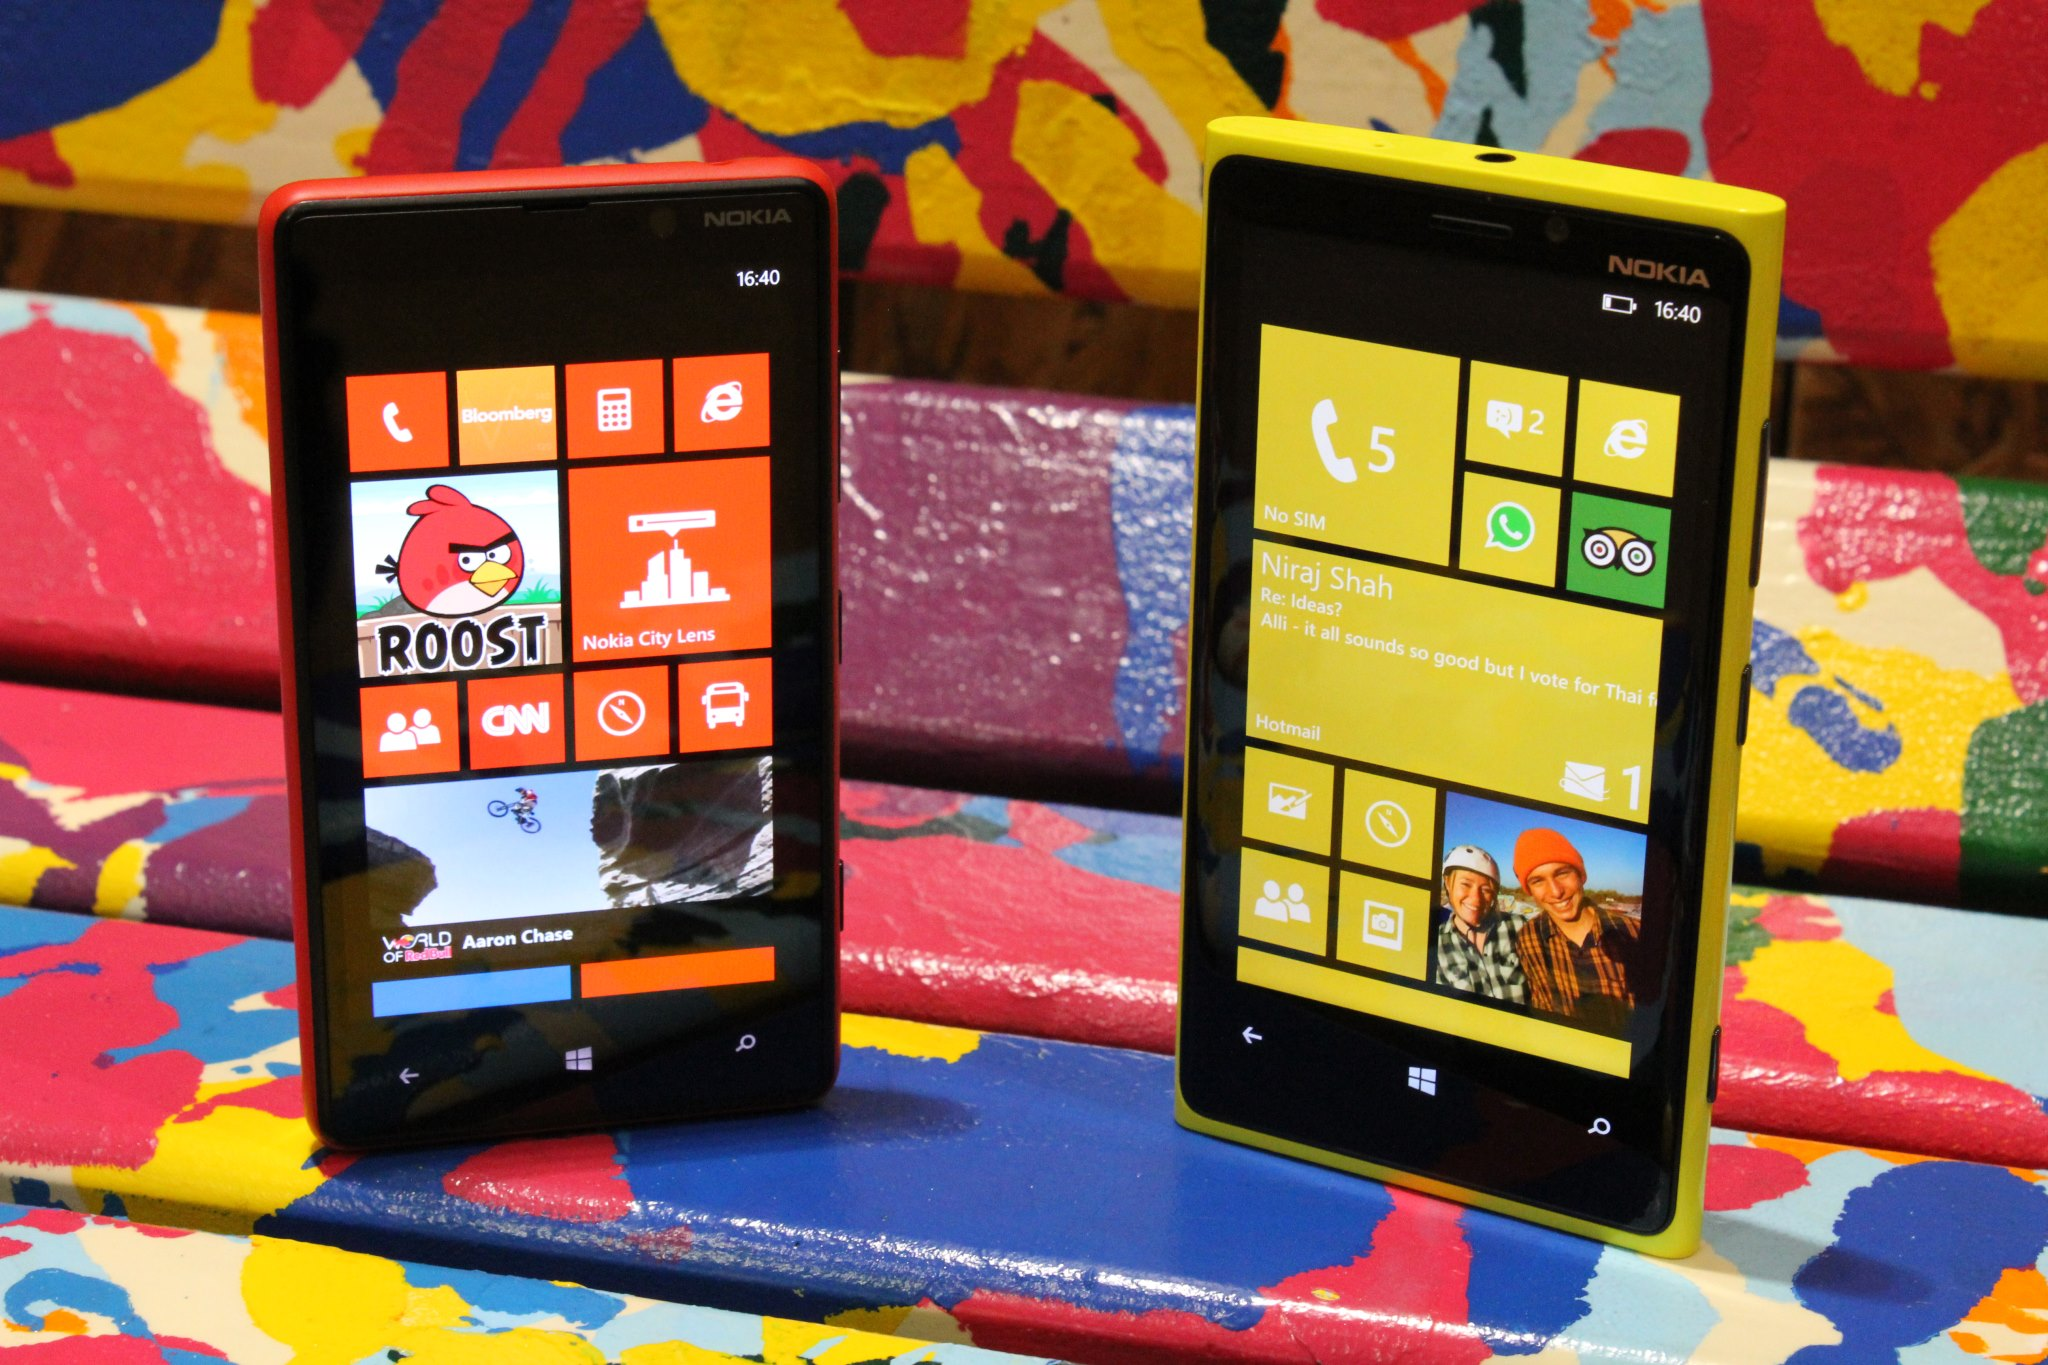 Nokia Lumia 920 and 820 with their beautiful displays